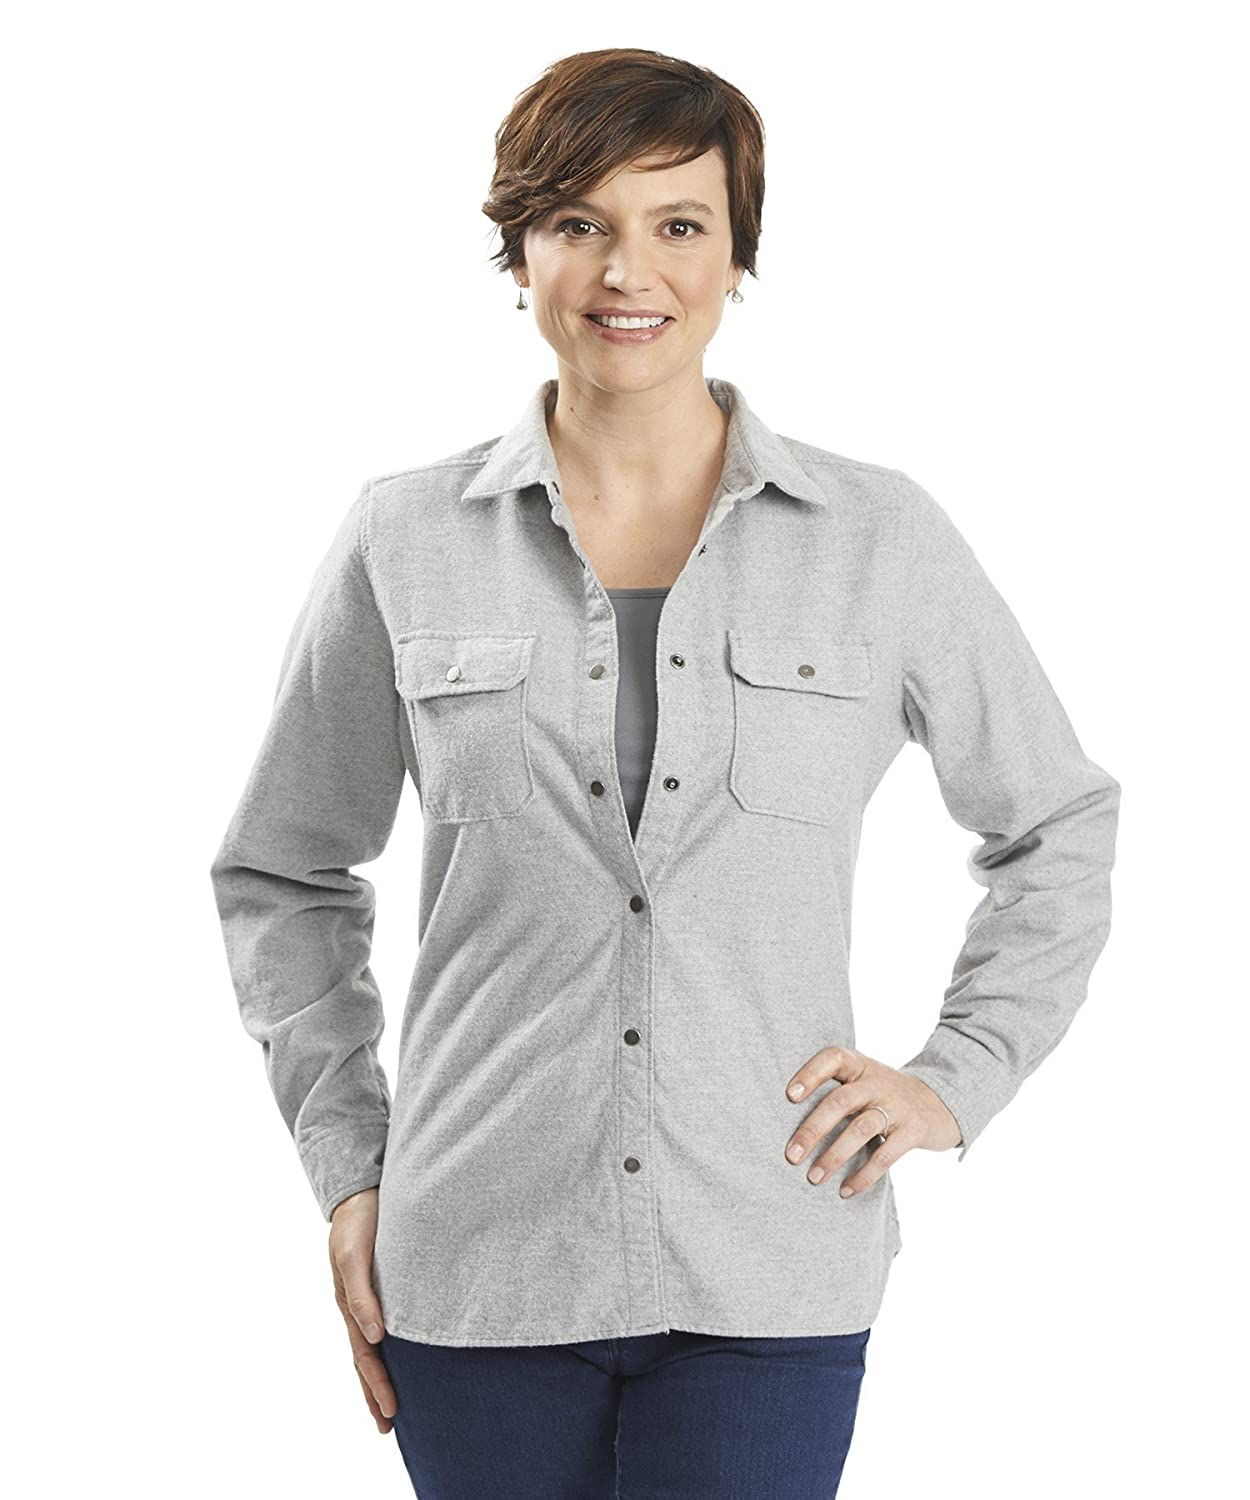 Woolrich Women's Heather Chamois Regular Fit Shirt